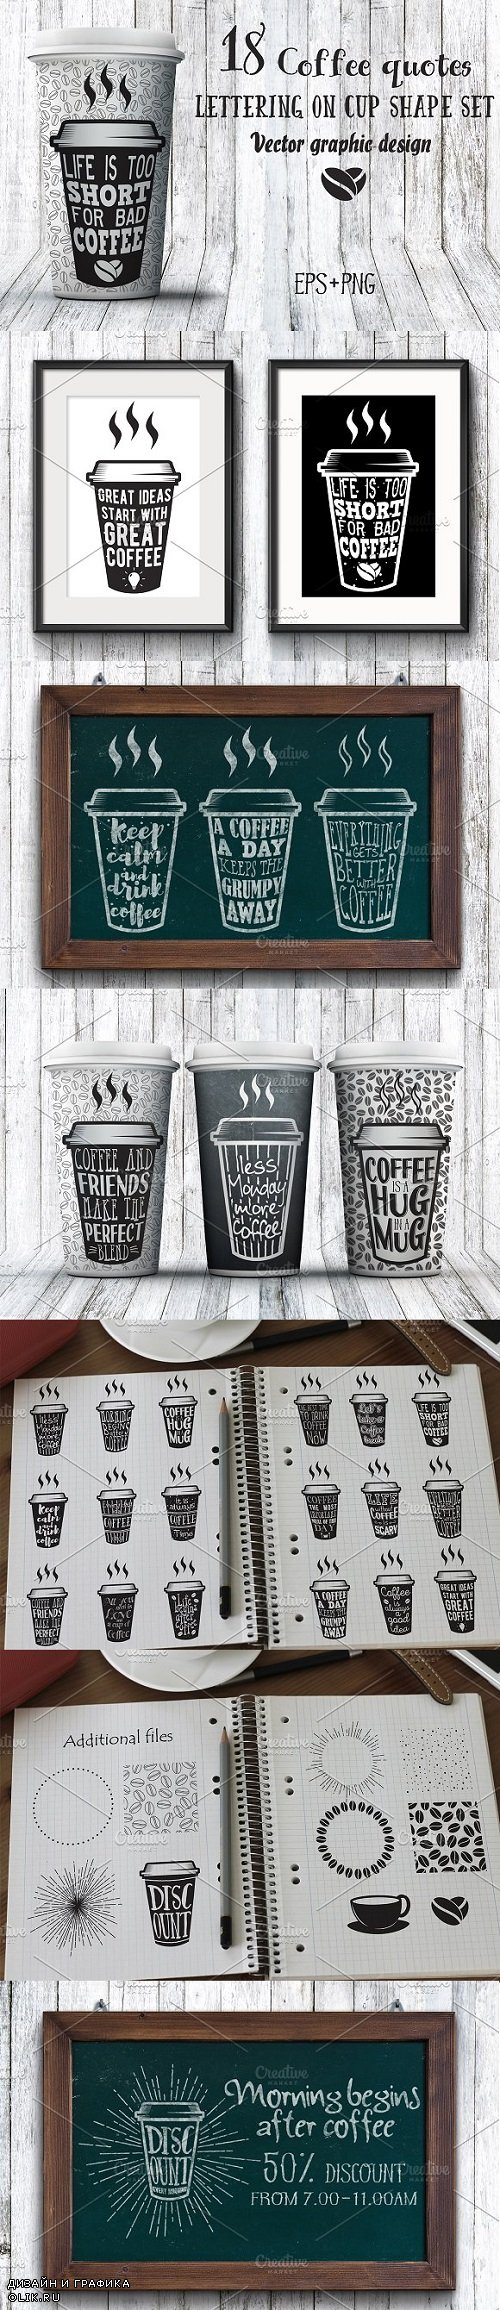 18 Coffee Quotes. Lettering on cups 1409637